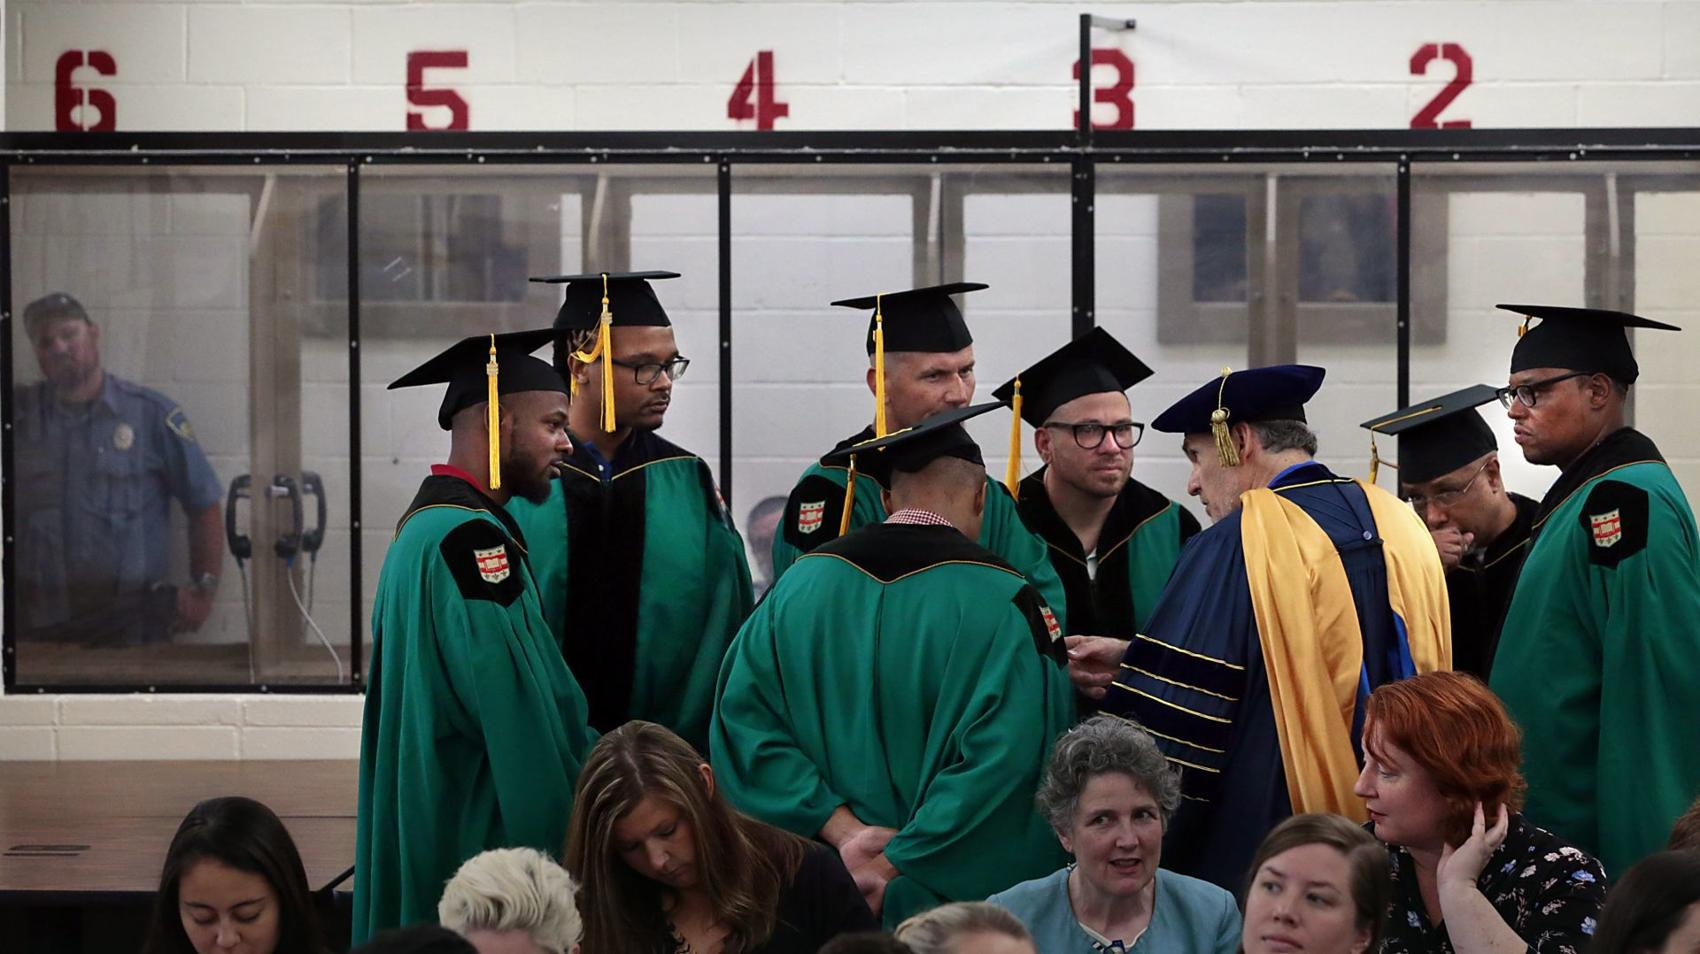 Graduates of Washington University's Prison Education Project speak with its director, Robert K. Henke, in front of the visitation bays at the Missouri Eastern Correctional Center in Pacific before ten inmates received associate degrees on Wednesday, May 22, 2019.